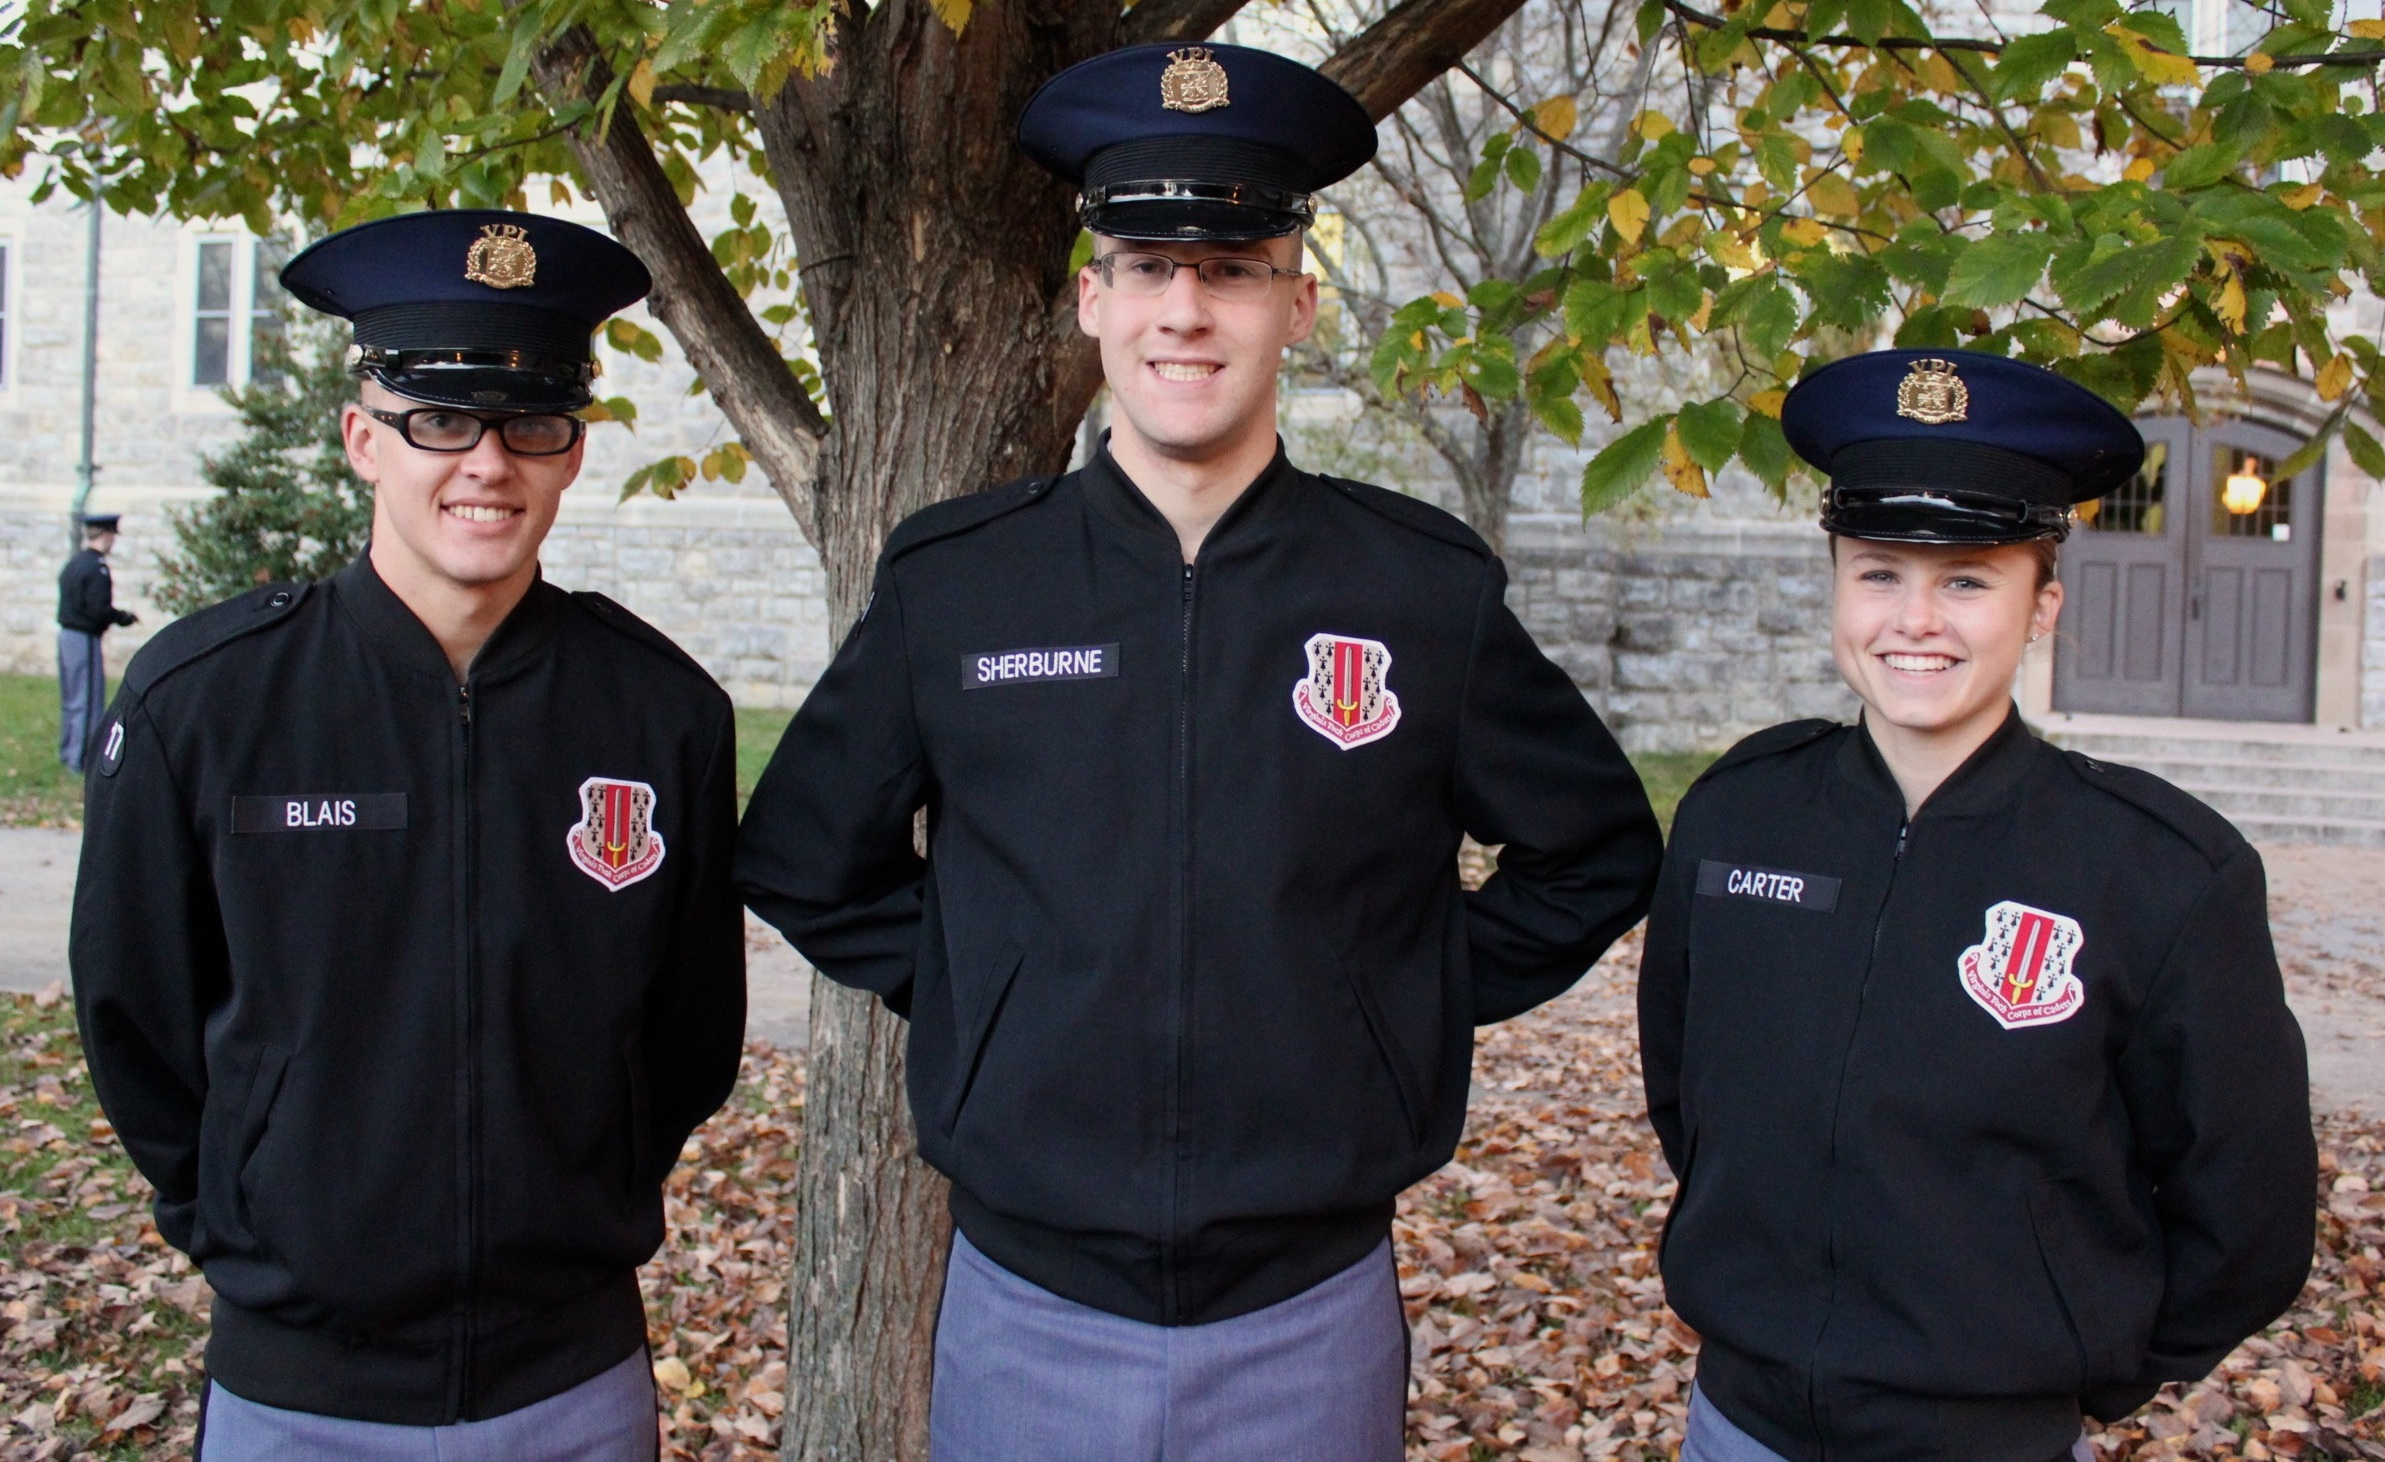 From left to right are Cadets Chas Blais, Michael Sherburne, and Amanda Carter in the Eggleston Quad.